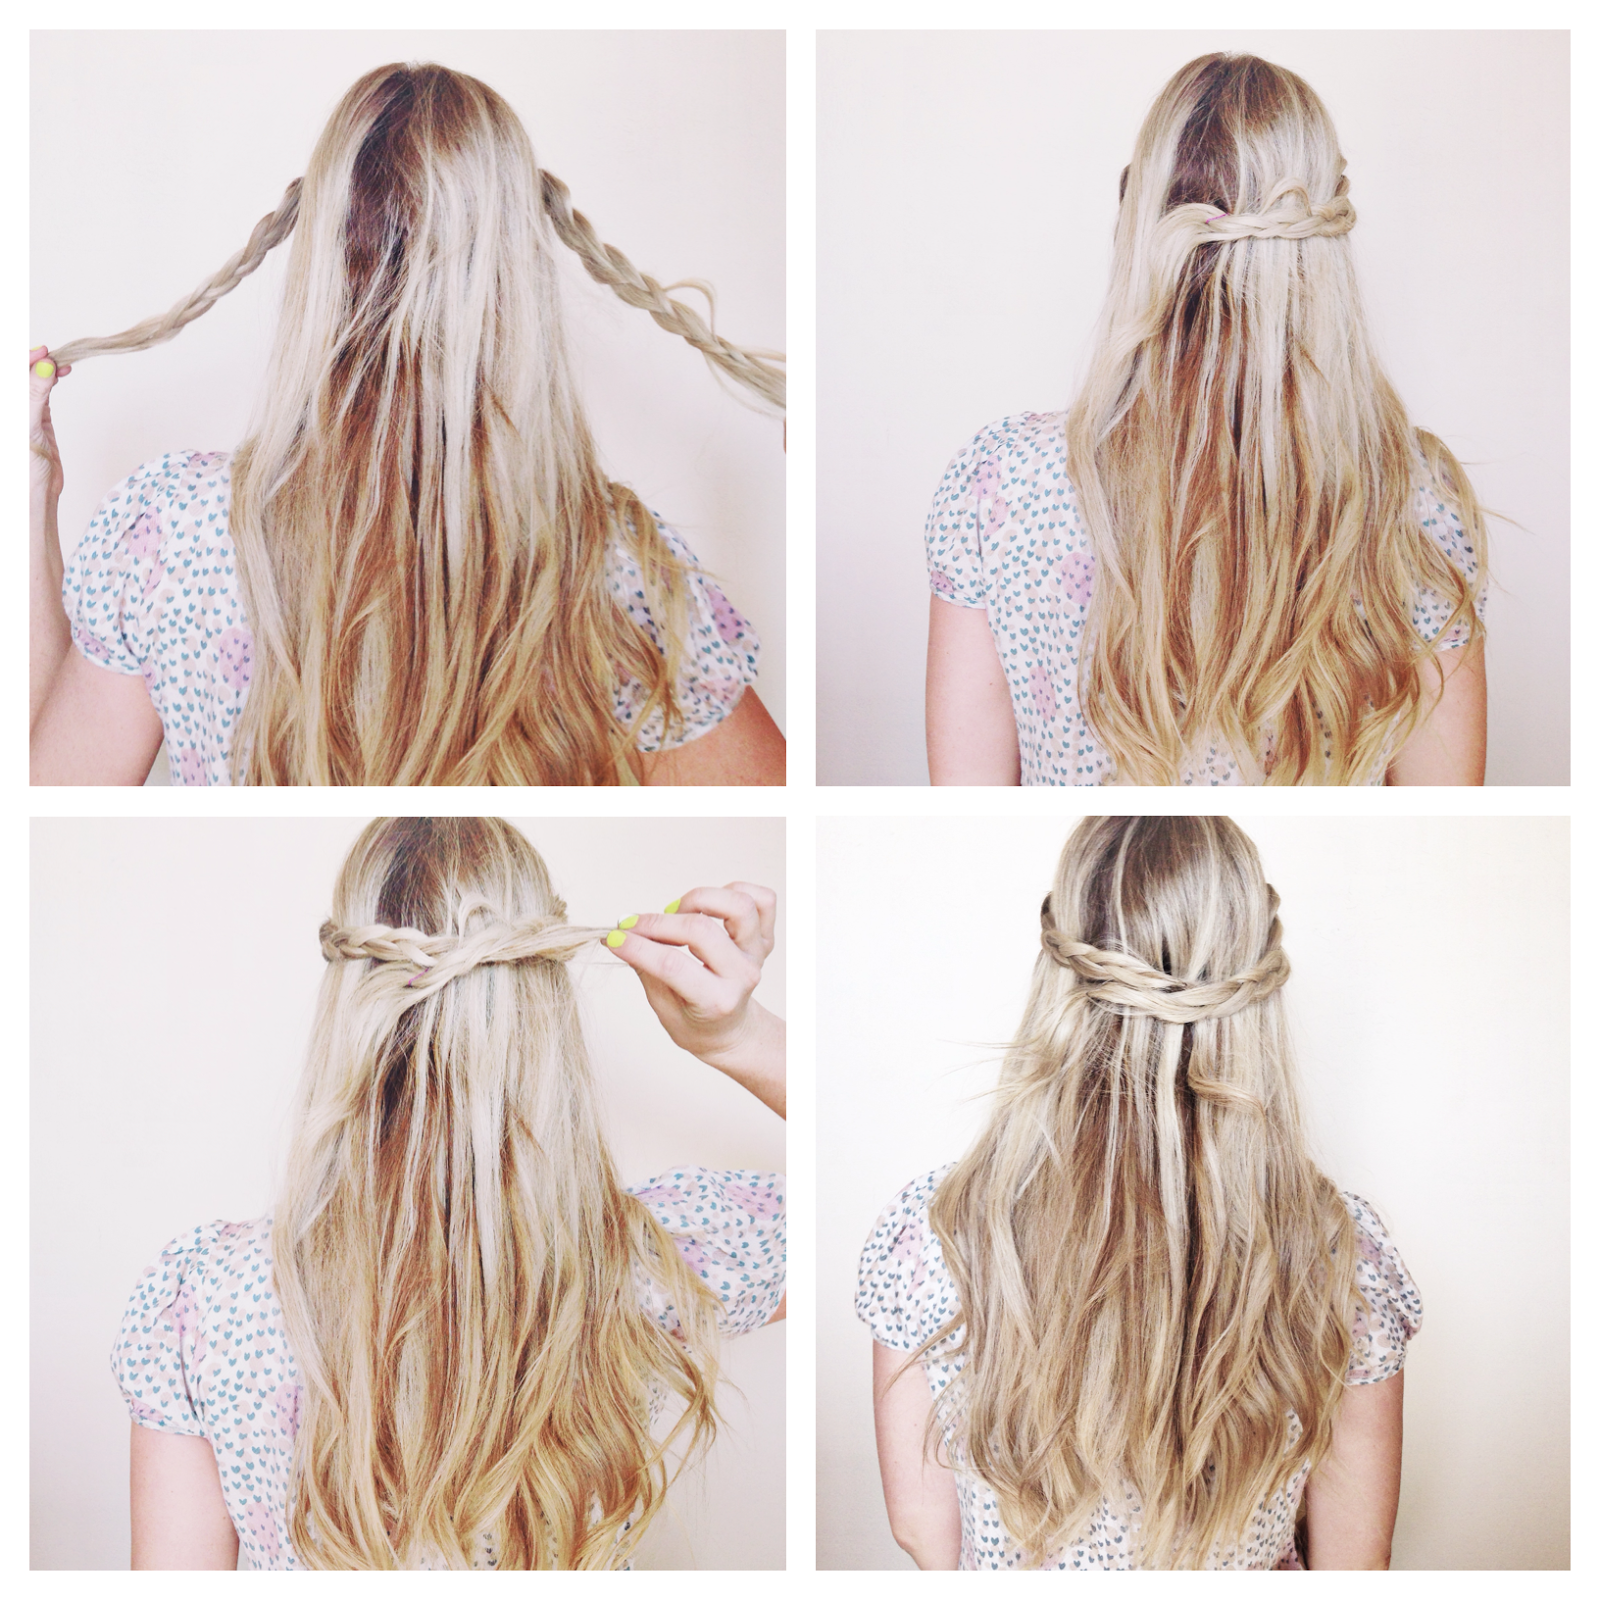 Easy Half Up Half Down Hairstyles For School - it-fits.info